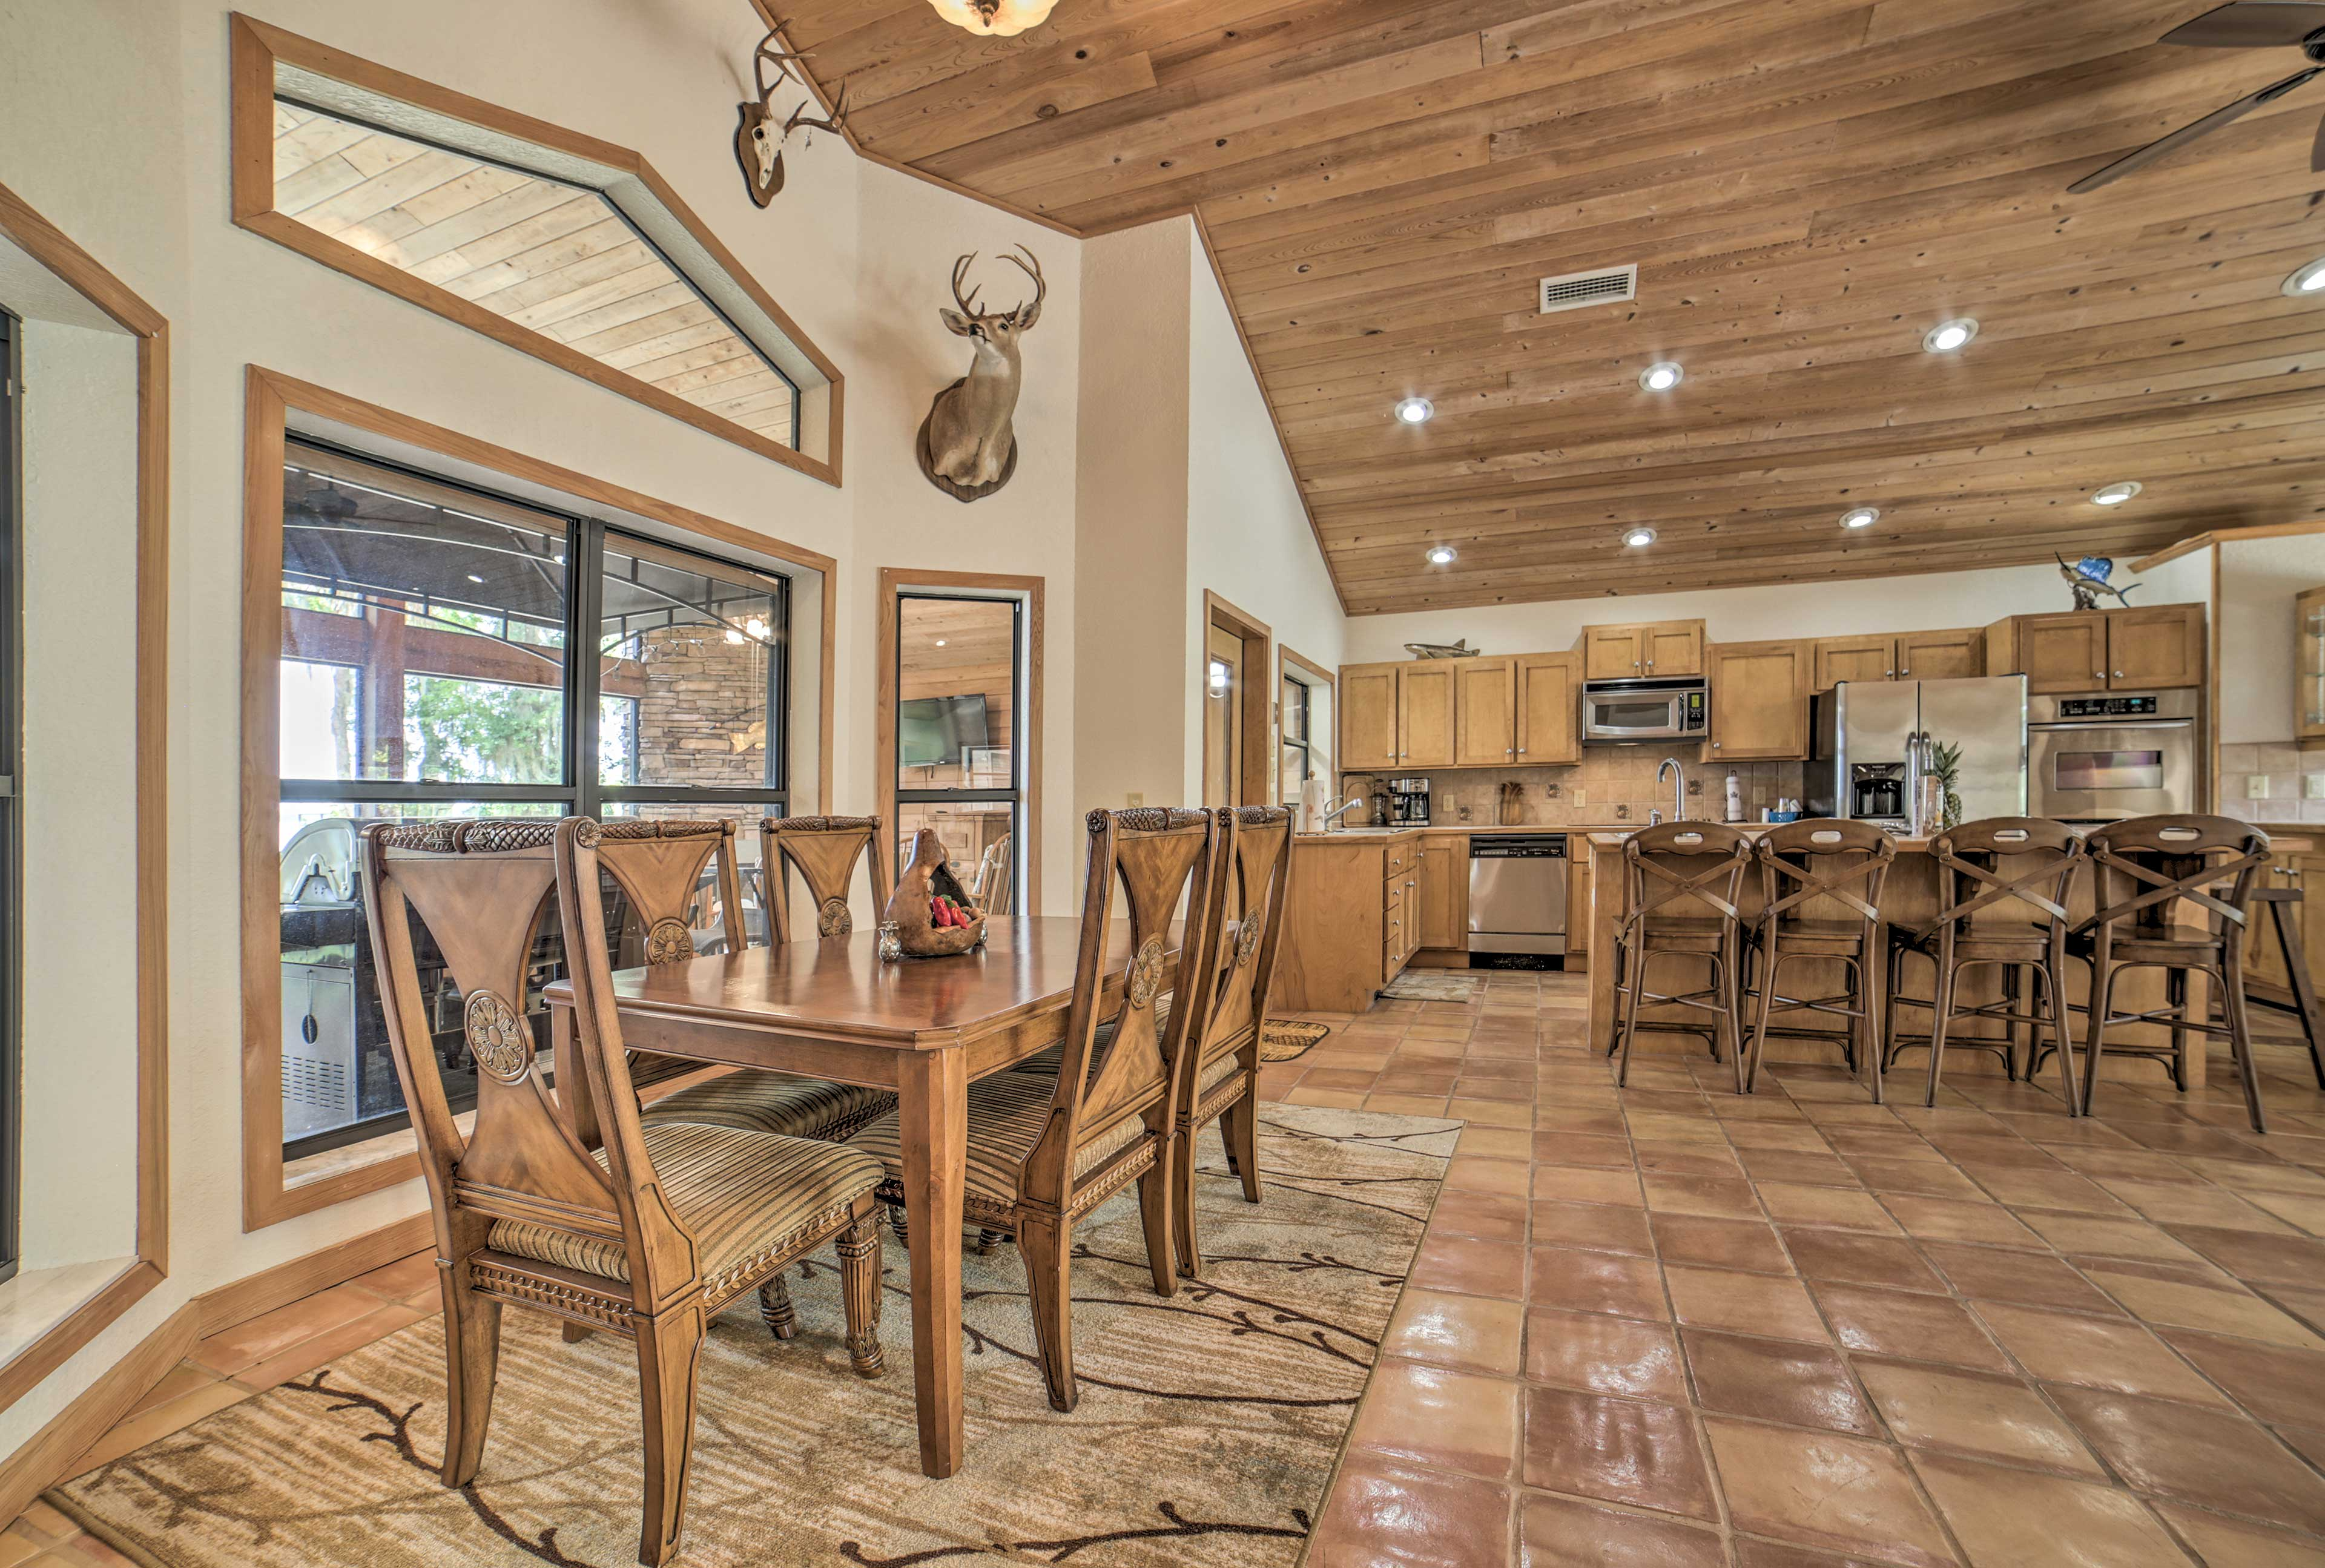 Dine together at the 6-person table.